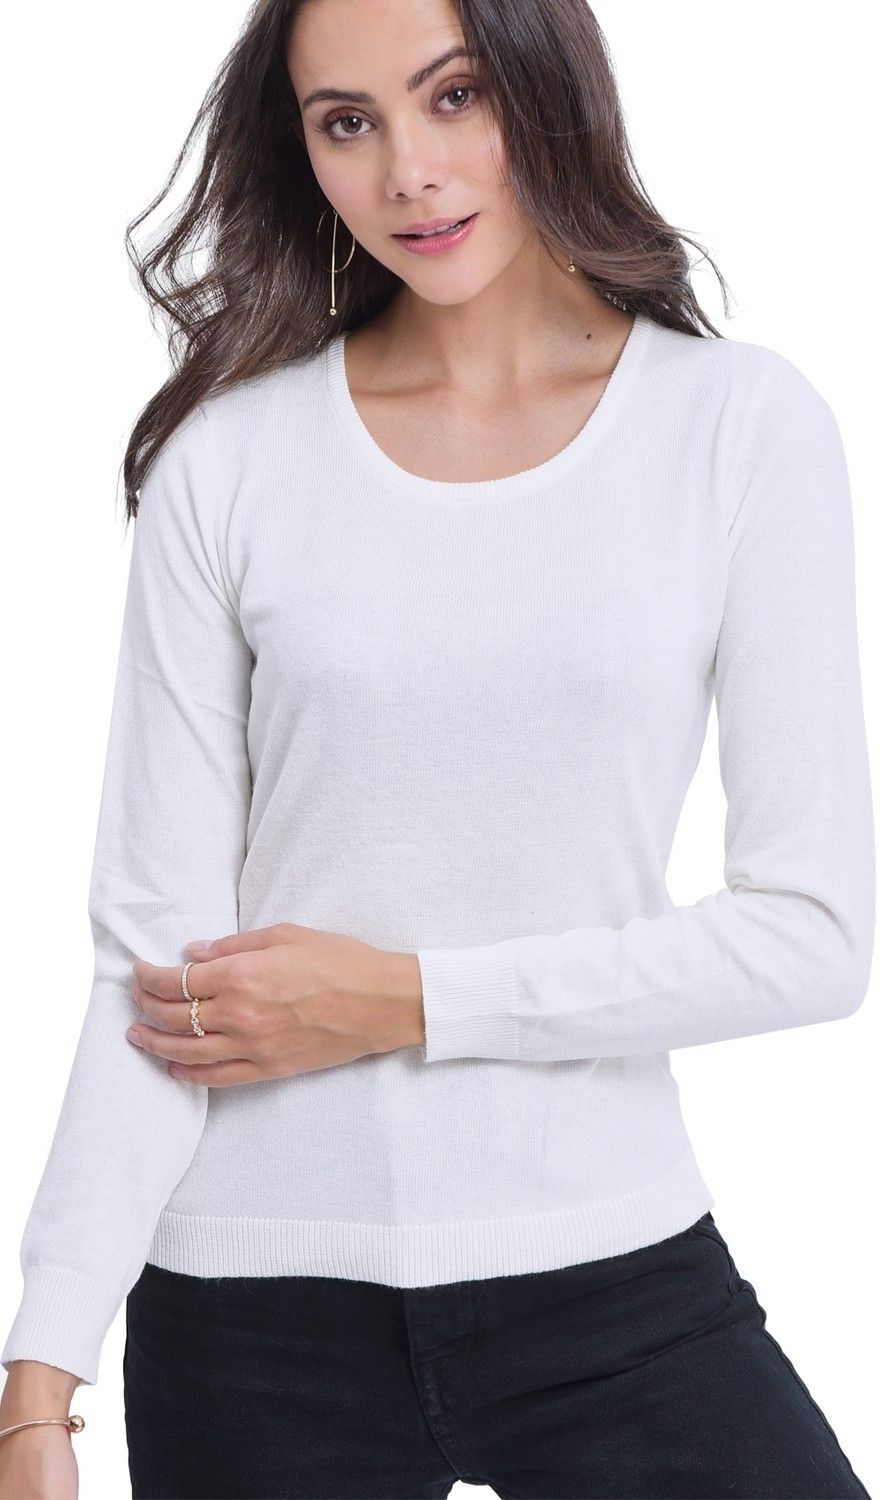 Assuili Round Neck Sweater in Natural